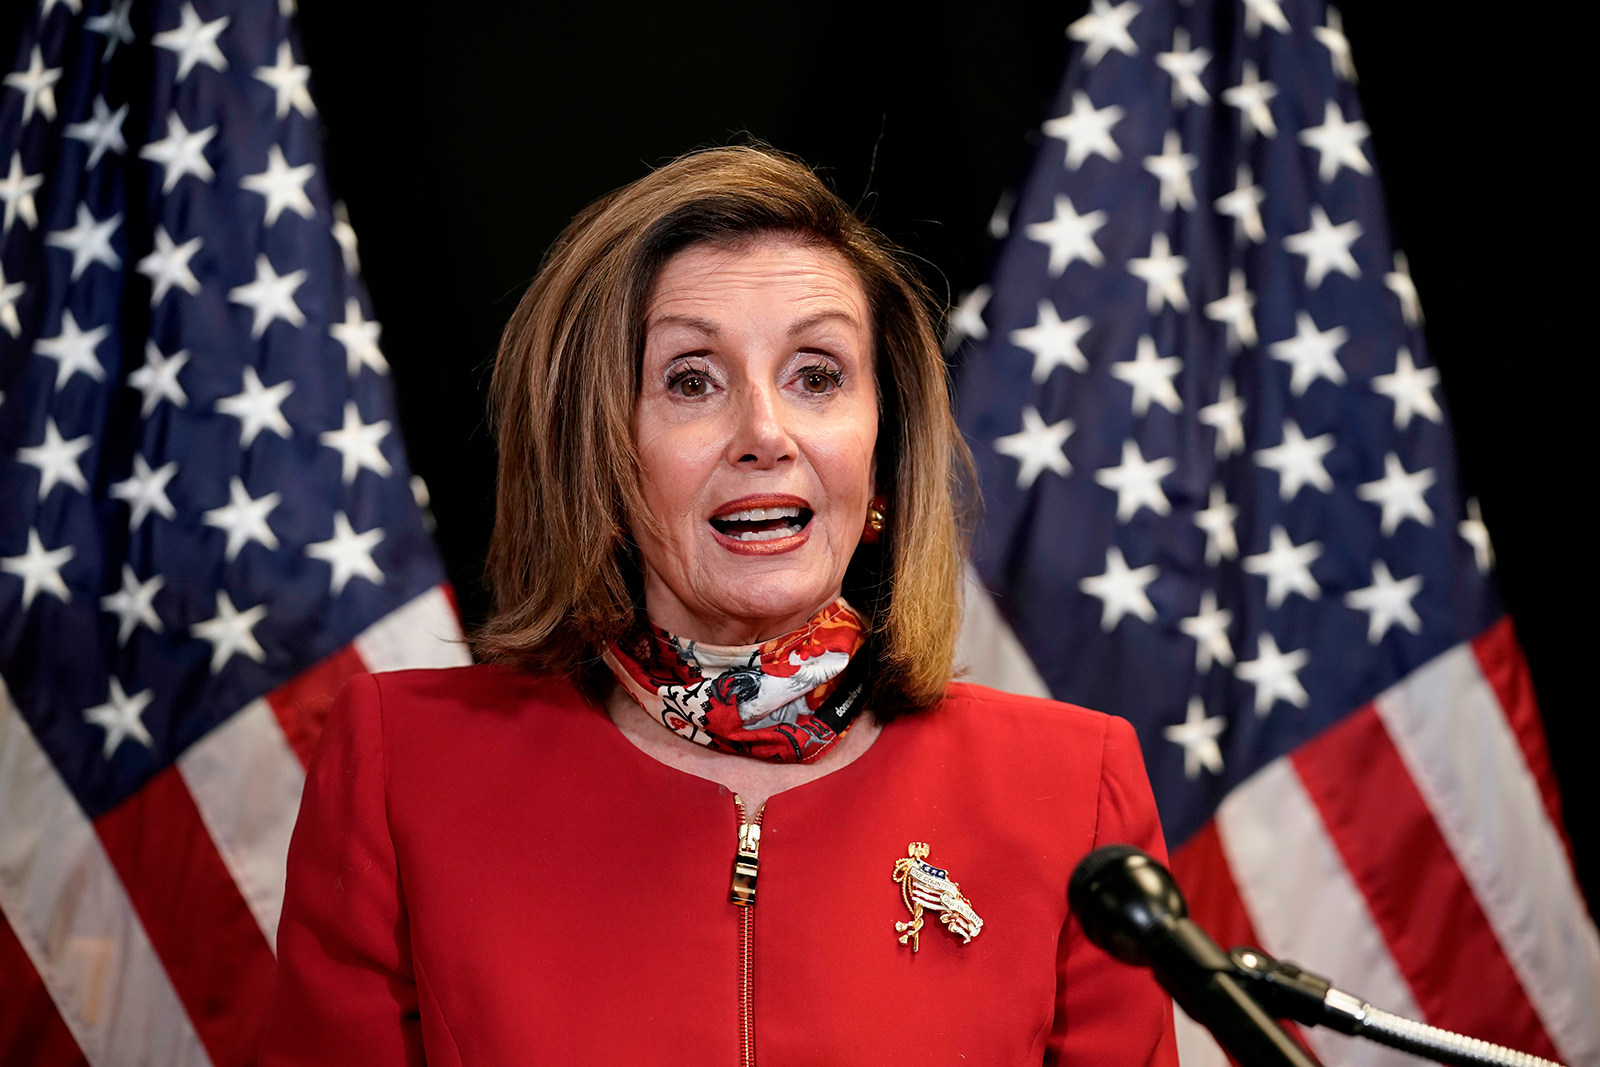 Speaker of the House Nancy Pelosi, talks to reporters about Election Day results in races for the House of Representatives, at Democratic National Committee headquarters in Washington, DC November 3.